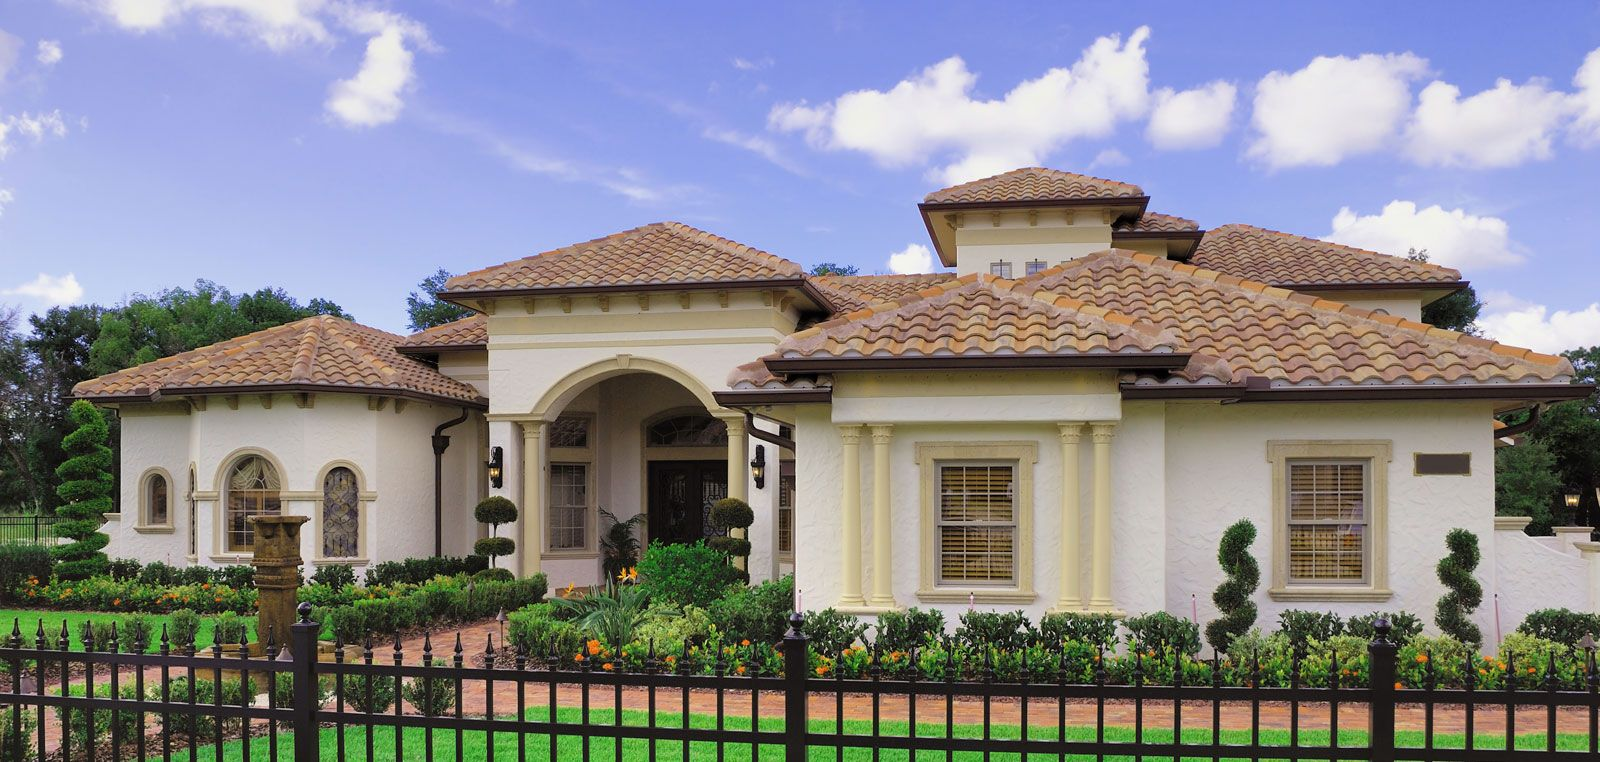 babson park divorced singles Full real estate market profile for babson park, florida investors, appraisers and lenders exclusive trends,  divorced, widowed and single (never married.